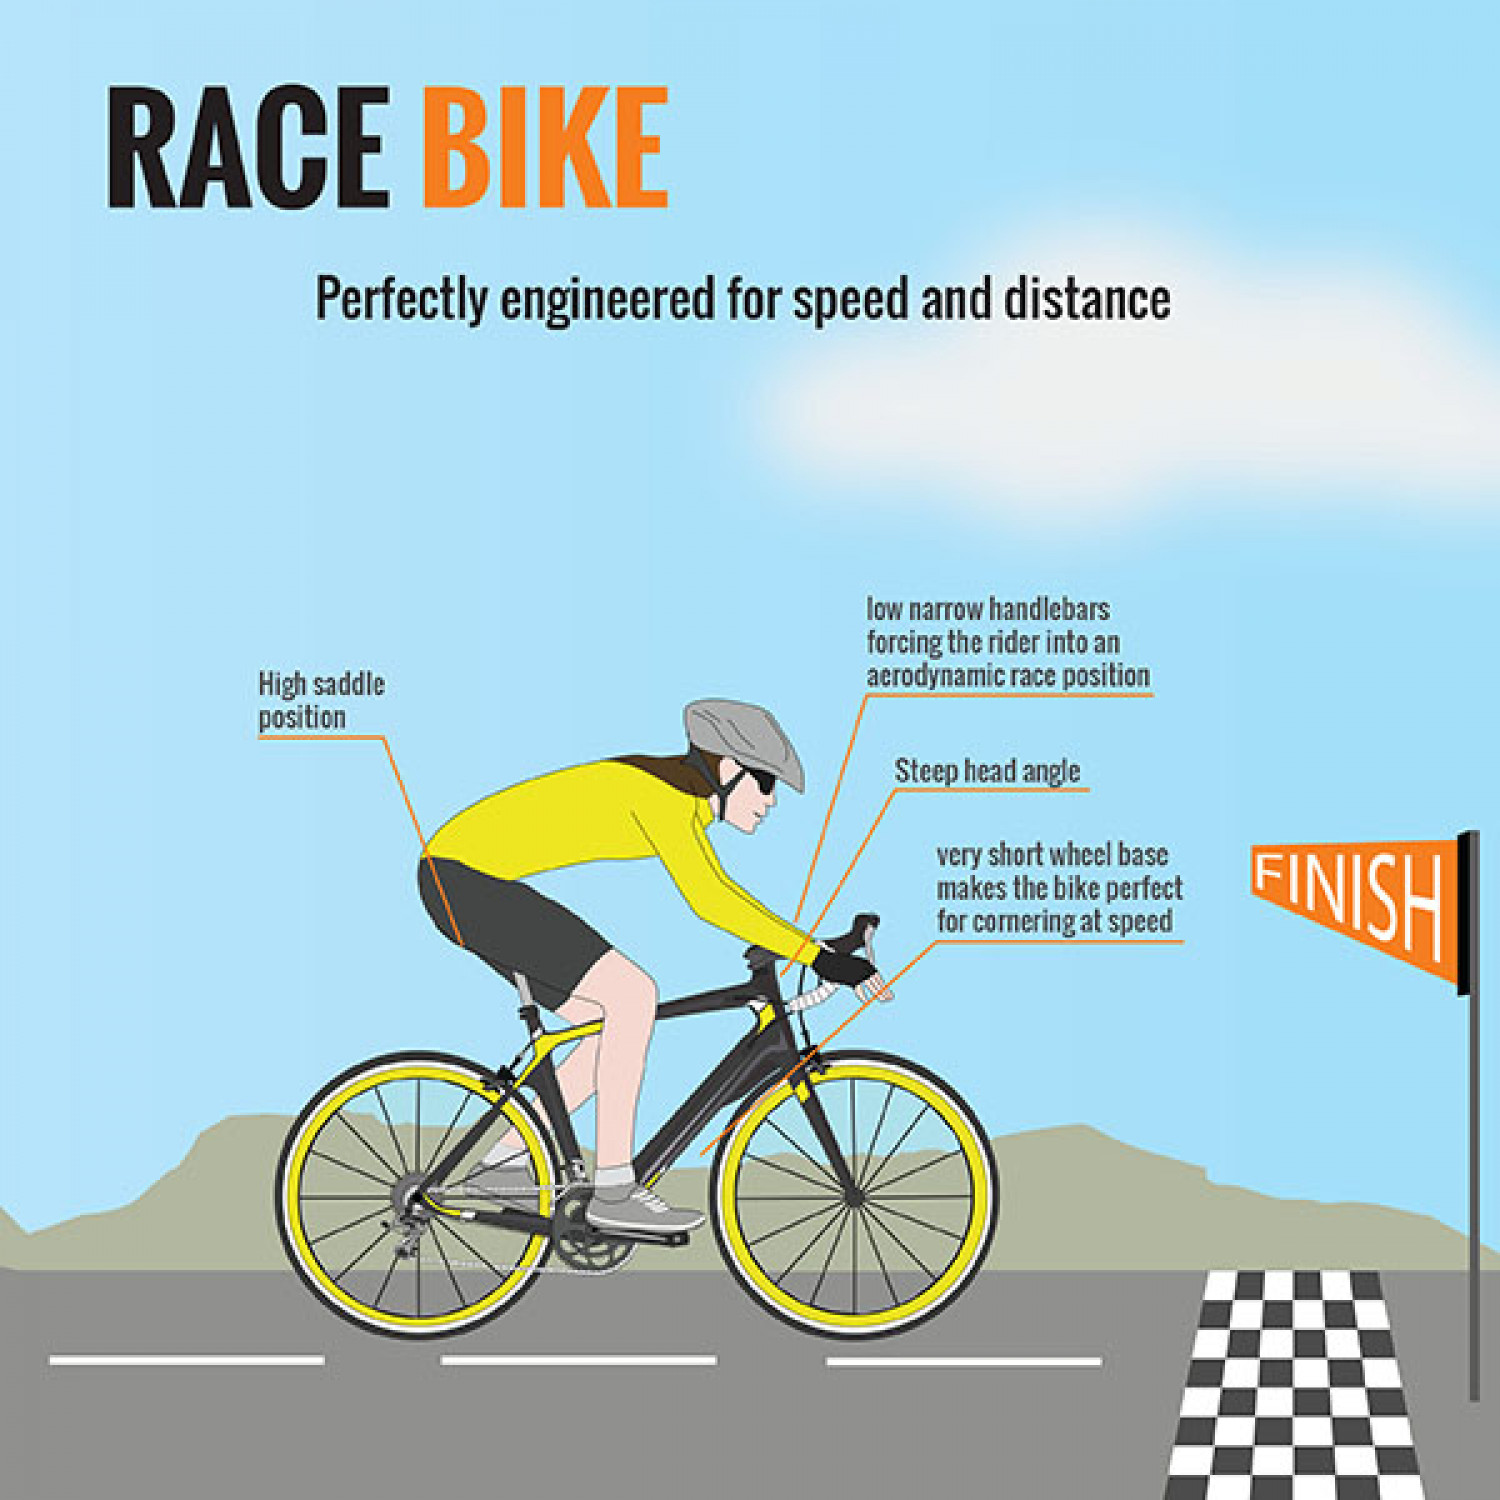 Anatomy of a Bicycle (Part IX) - The Road Race Bike | Visual.ly